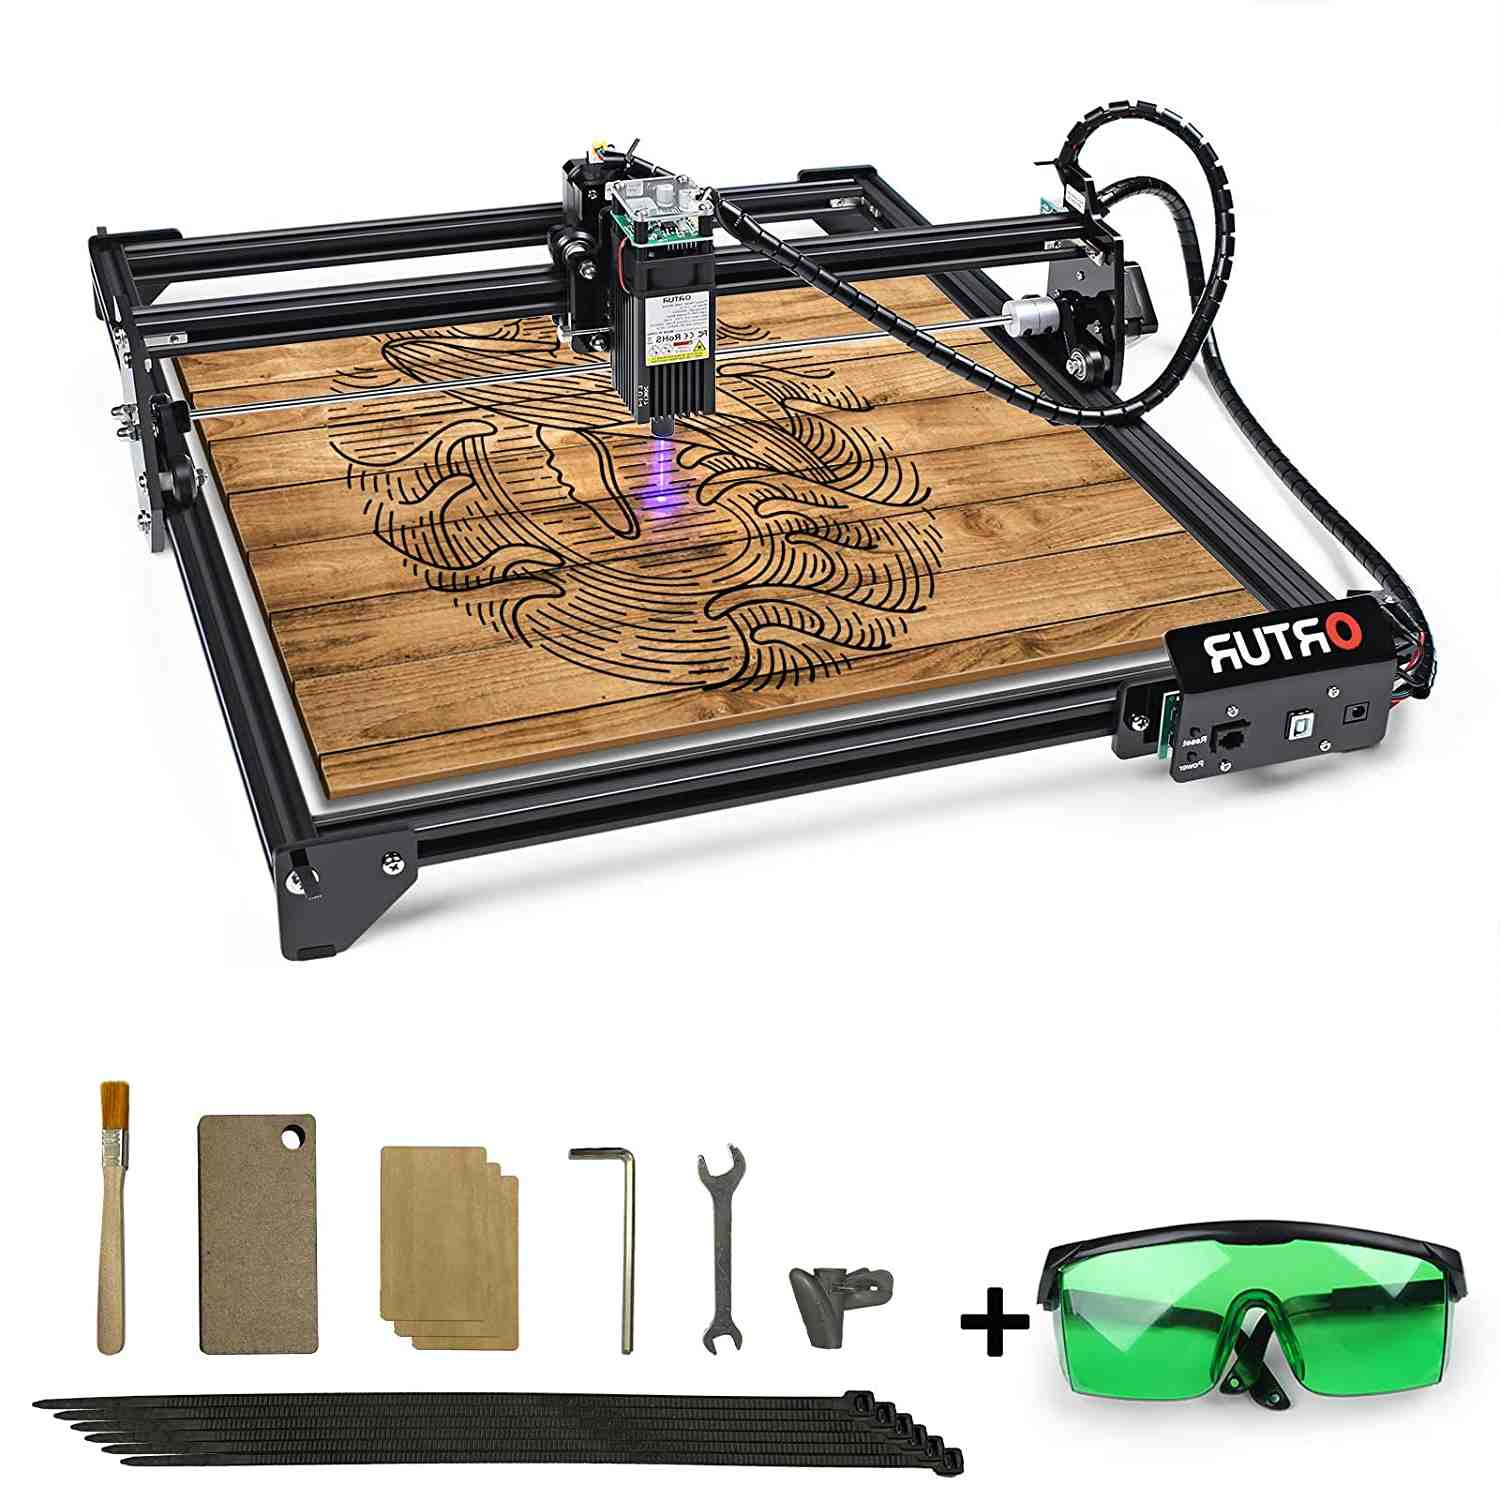 Are cheap laser engravers any good?